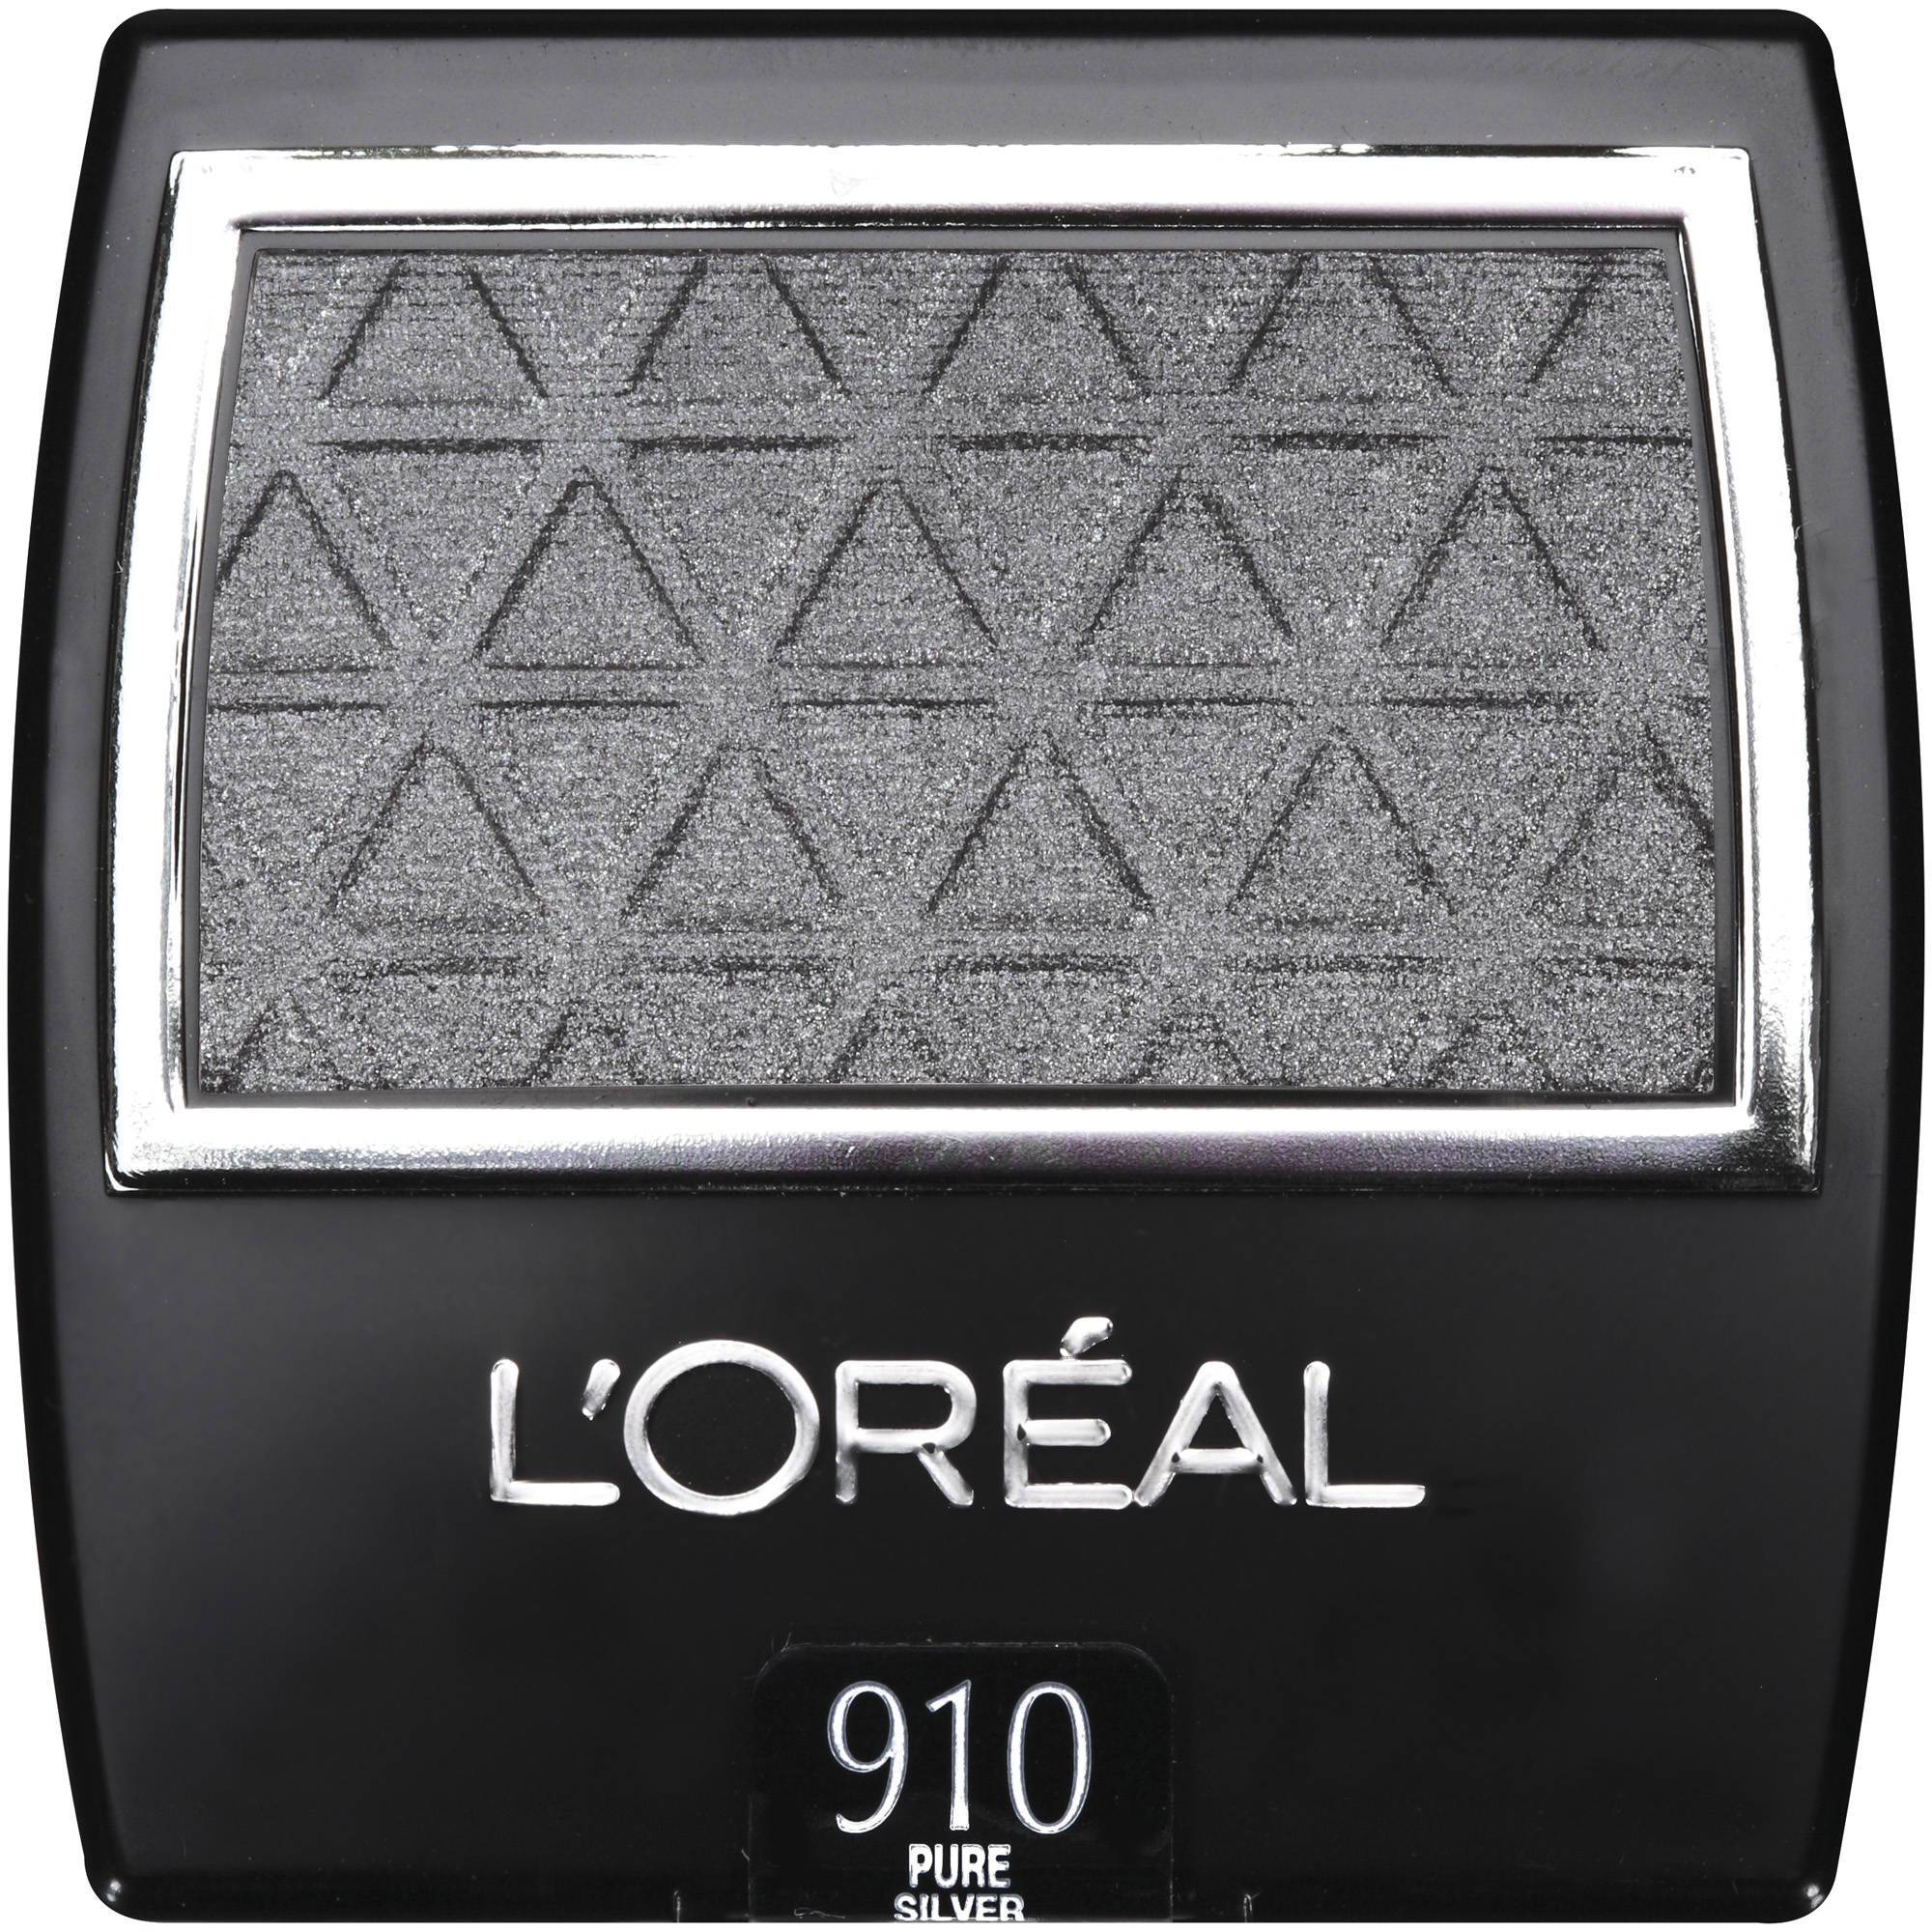 L'Oreal Paris Wear Infinite Eye Shadow, 910 Pure Silver, 0.1 oz